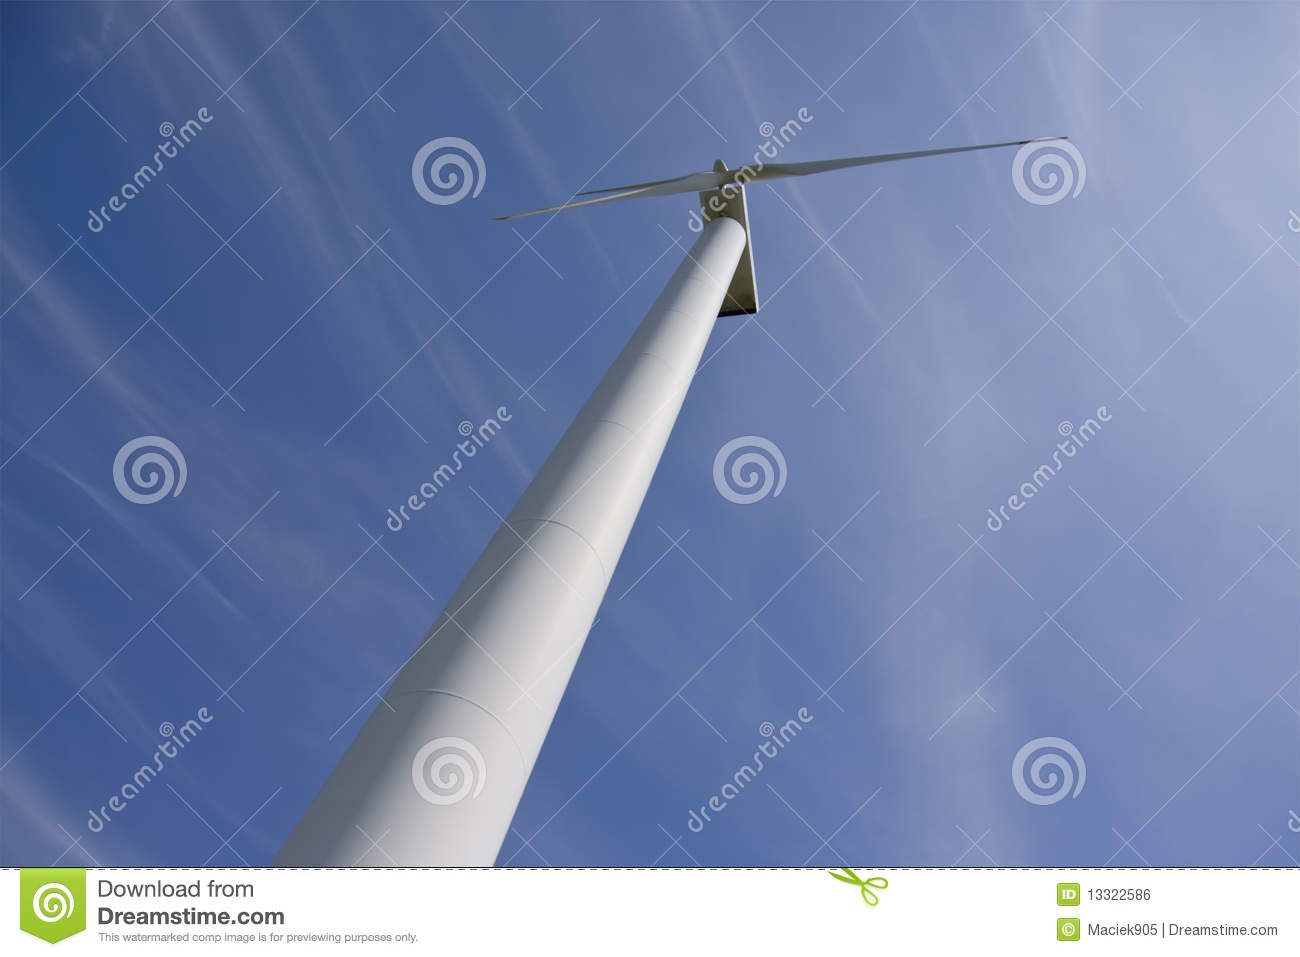 Wind power station against the blue sky